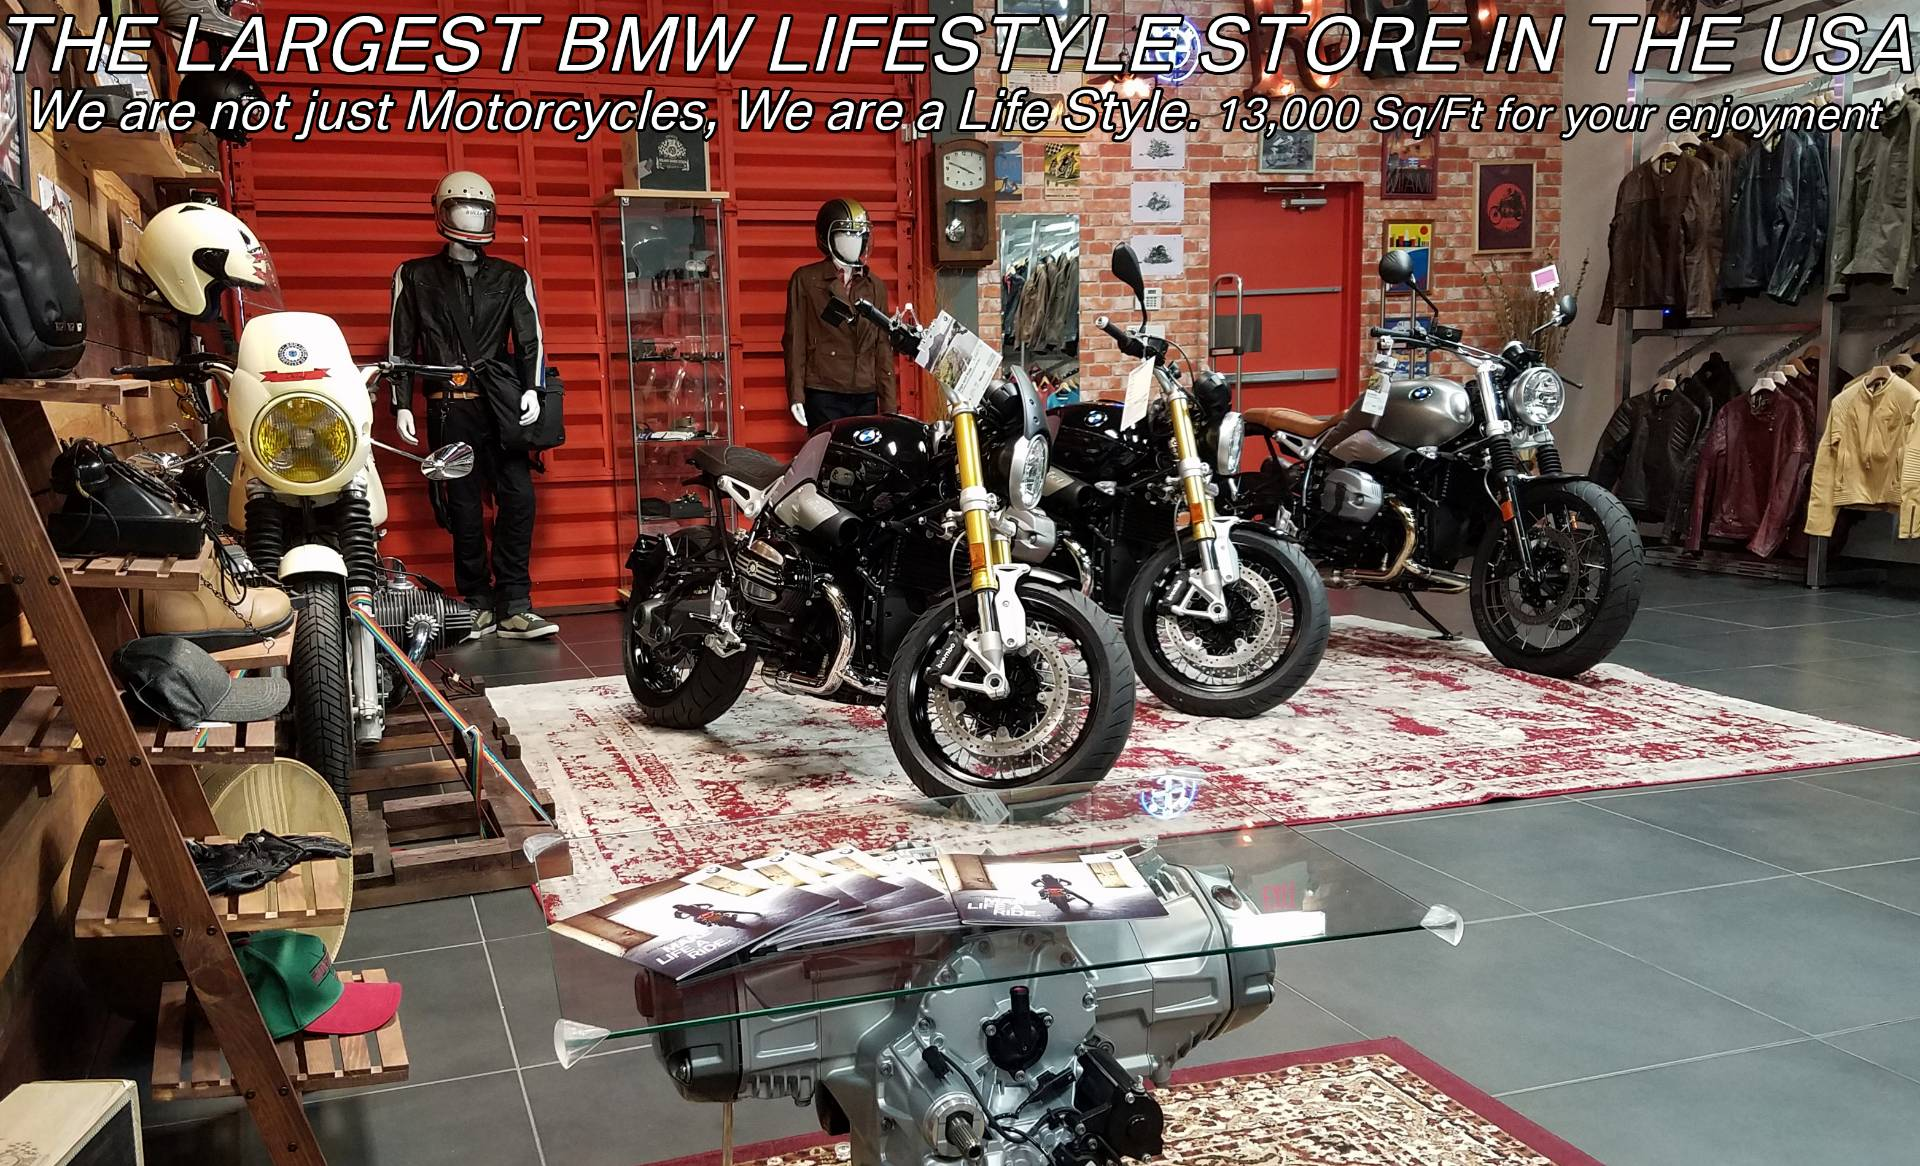 New 2017 BMW R 1200 R For Sale, BMW R 1200 Red For Sale, BMW Motorcycle R 1200R, new BMW 1200R, New BMW Motorcycle